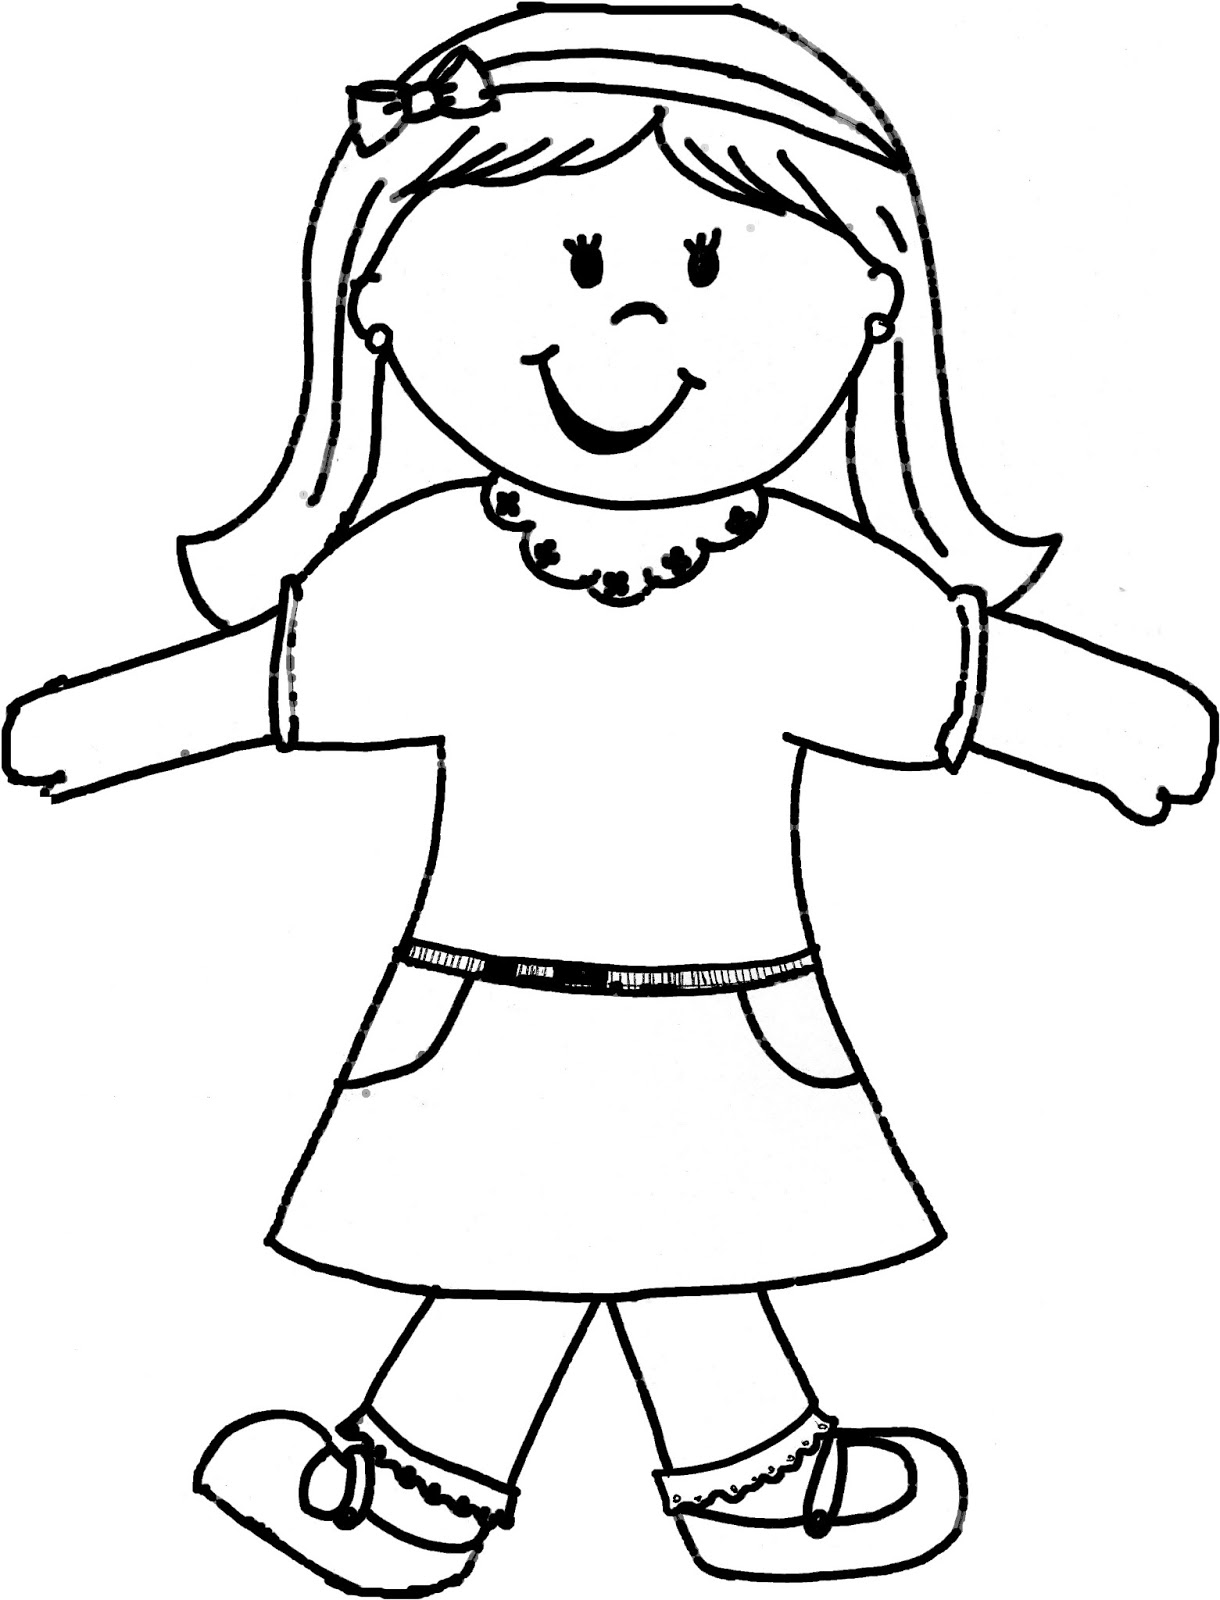 outline of a boy and girl coloring pages imagen de boy outline and tumblr outline drawings girl pages boy a outline and of coloring